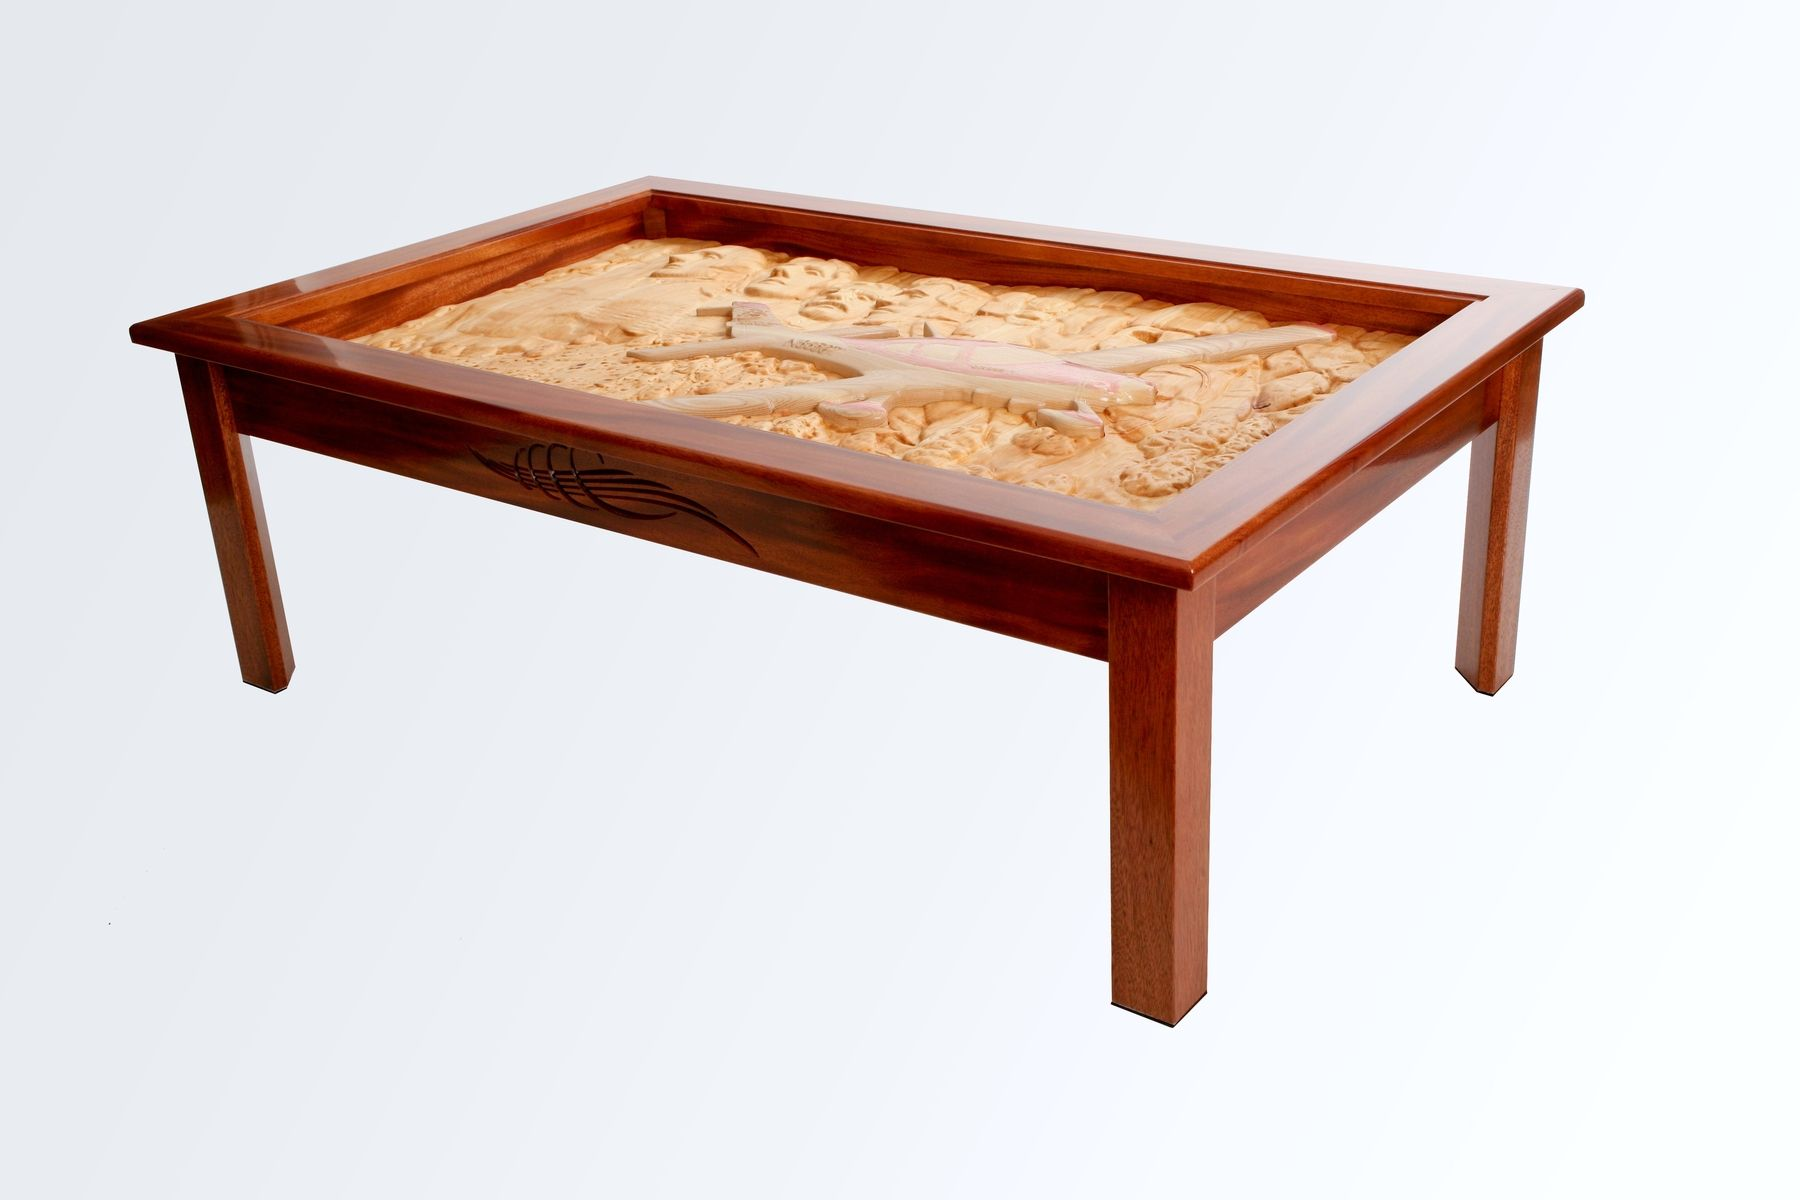 Hand Crafted Coffee Table With Carved Airplane Flying Over Mt